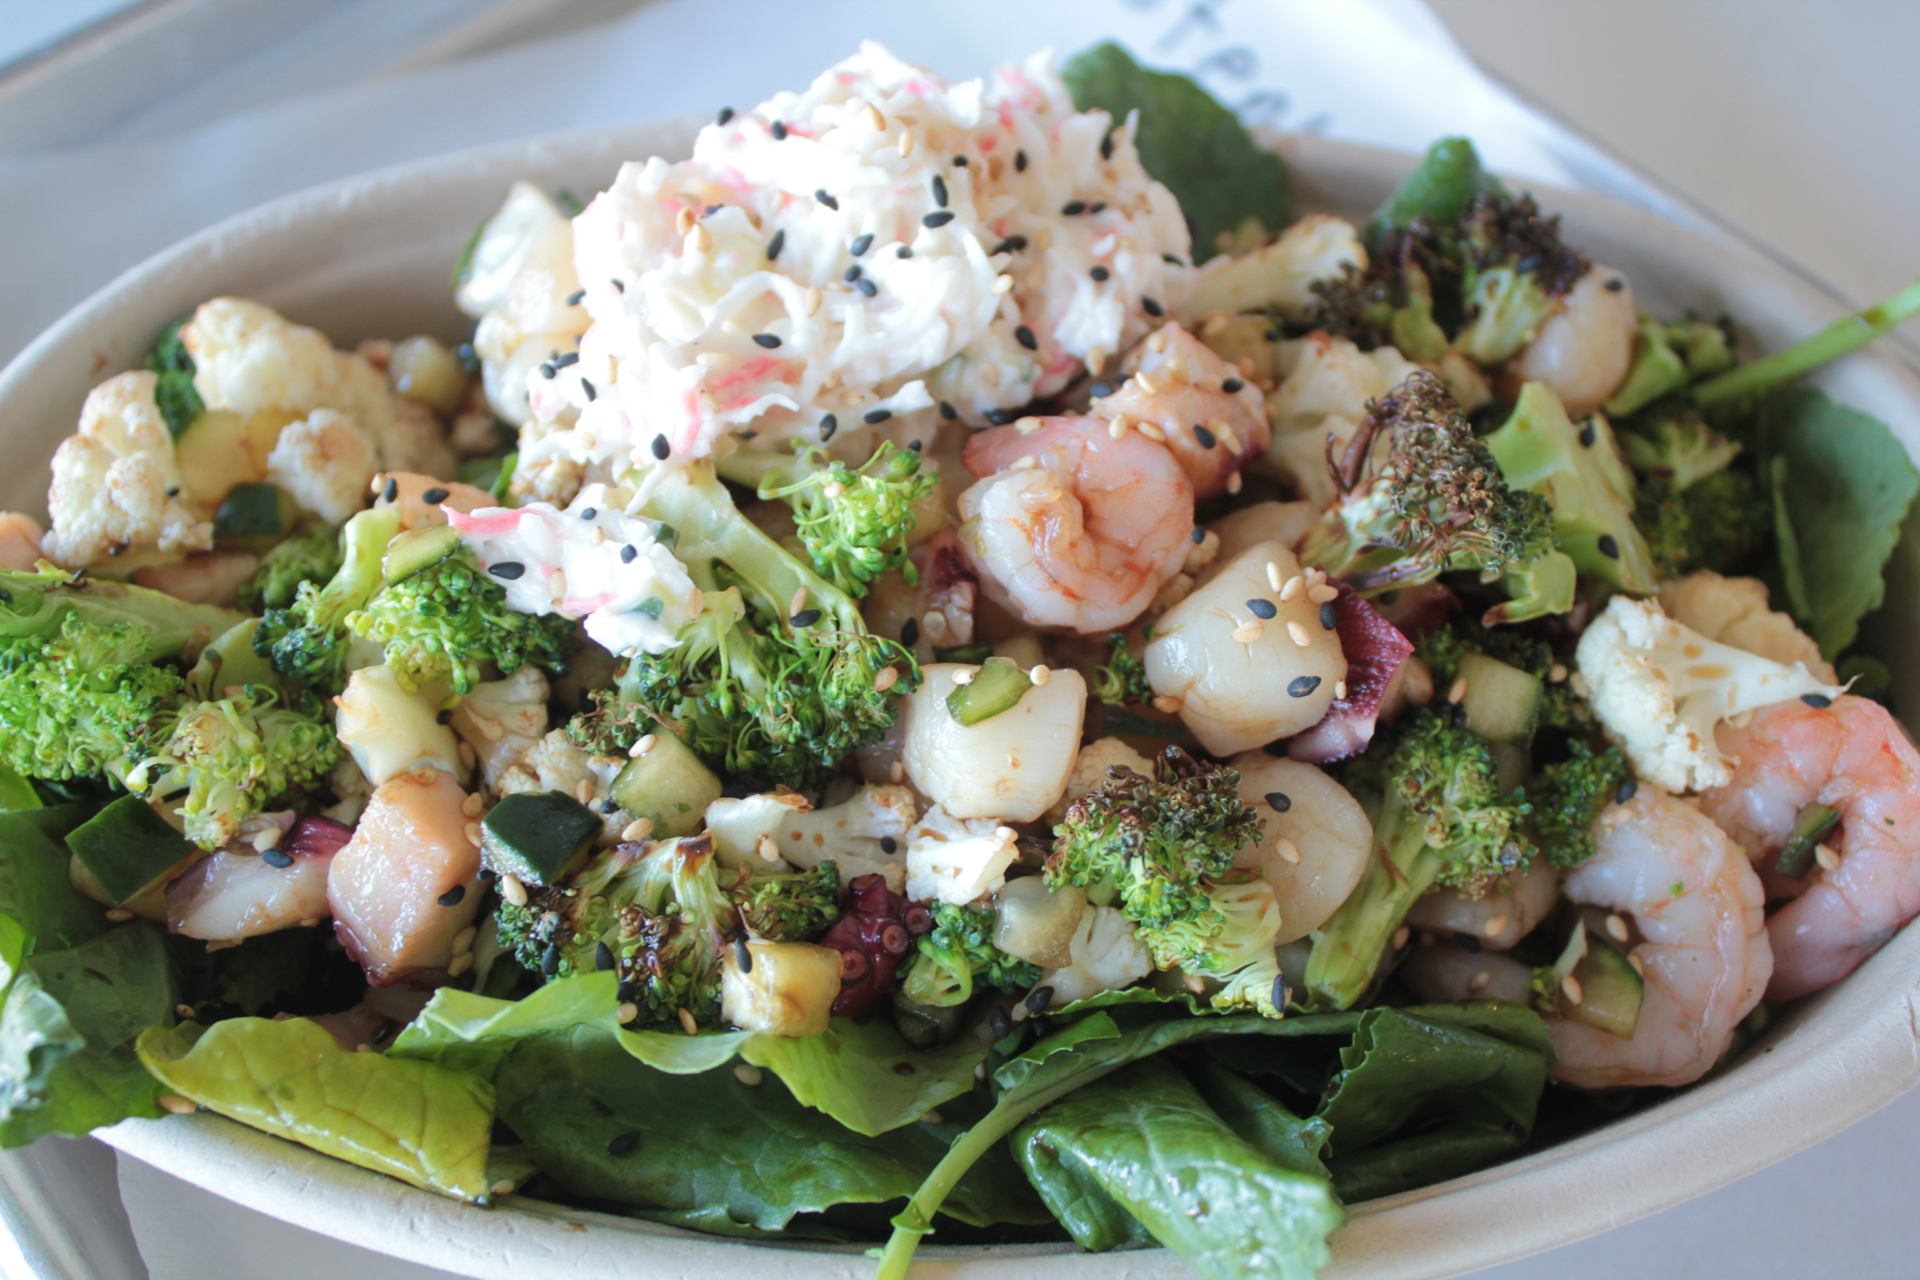 Scallops, octopus and shrimp in shoyu dressing over kale and roasted vegetables.